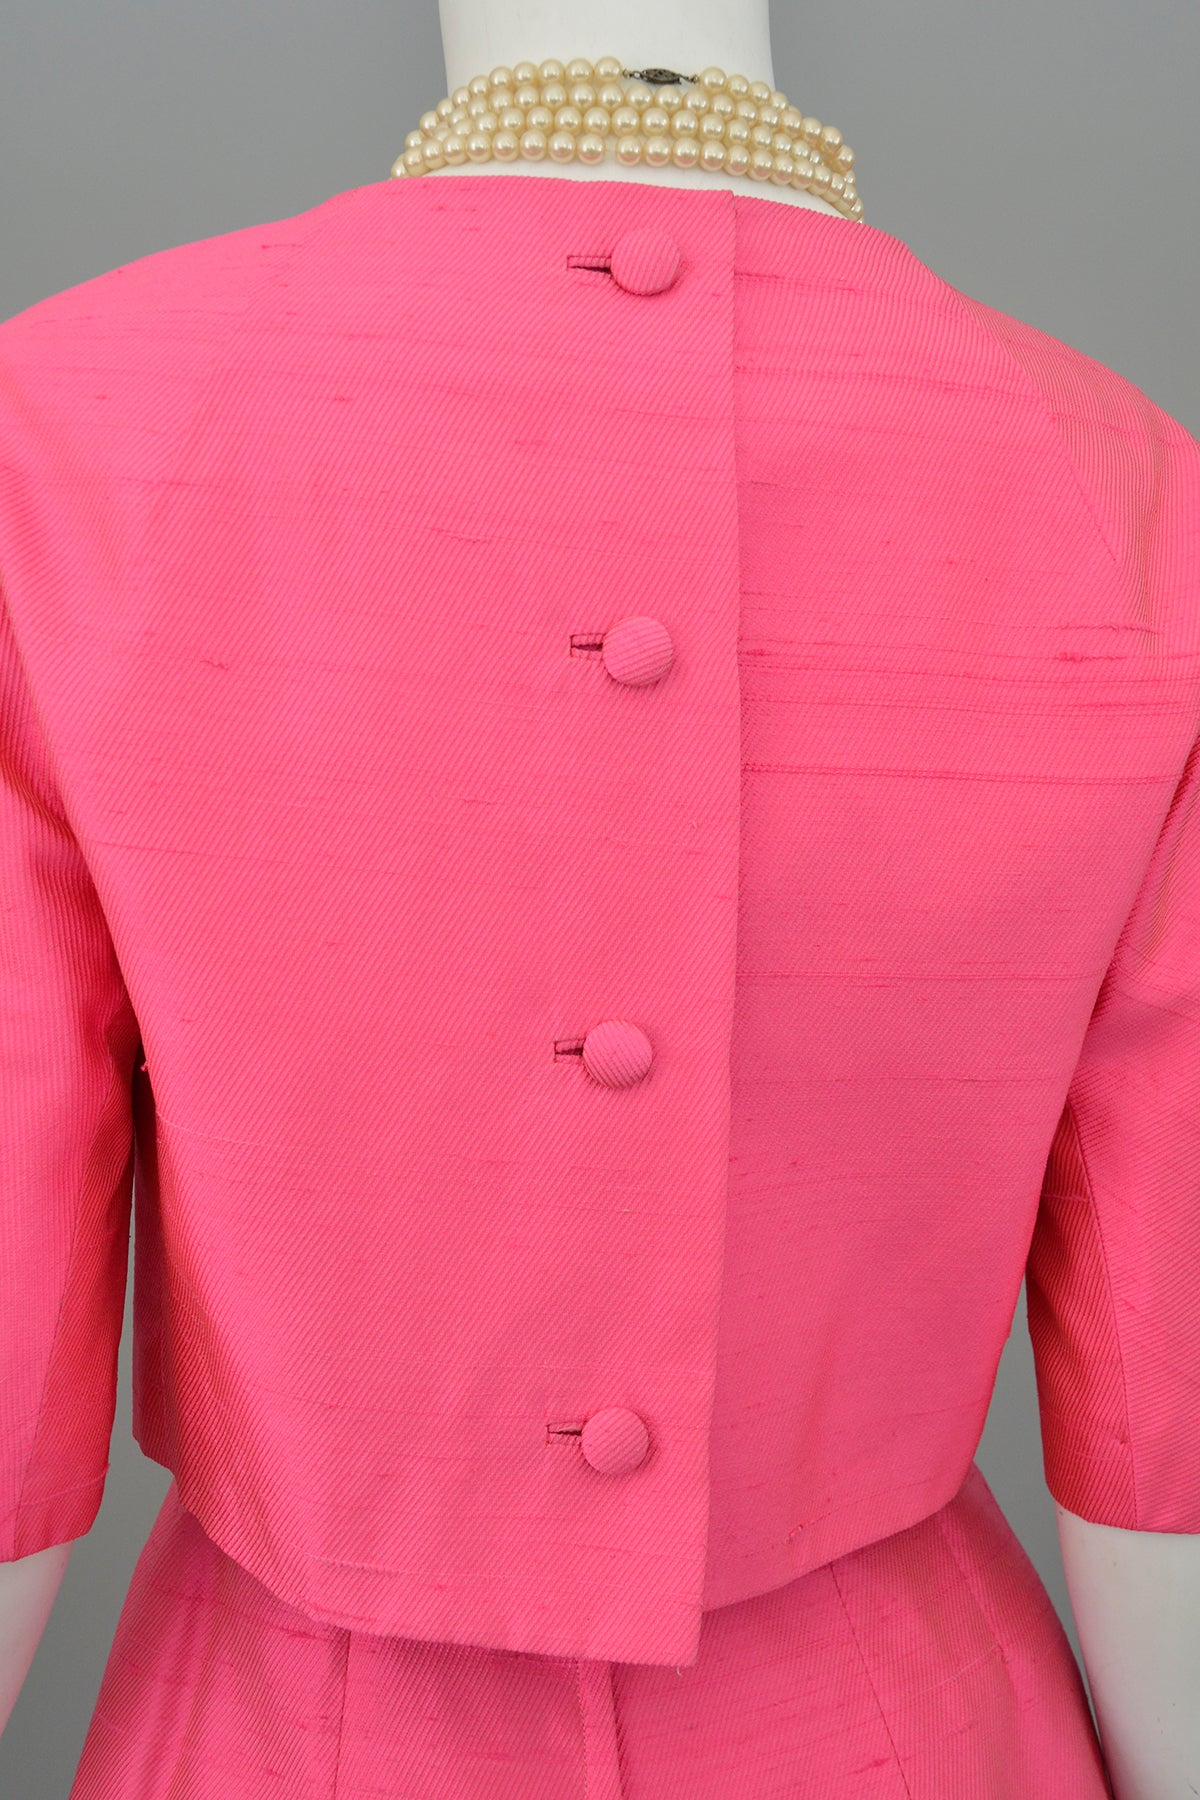 1960s Hot Pink Empire Wiggle Dress with Matching Bow Bolero